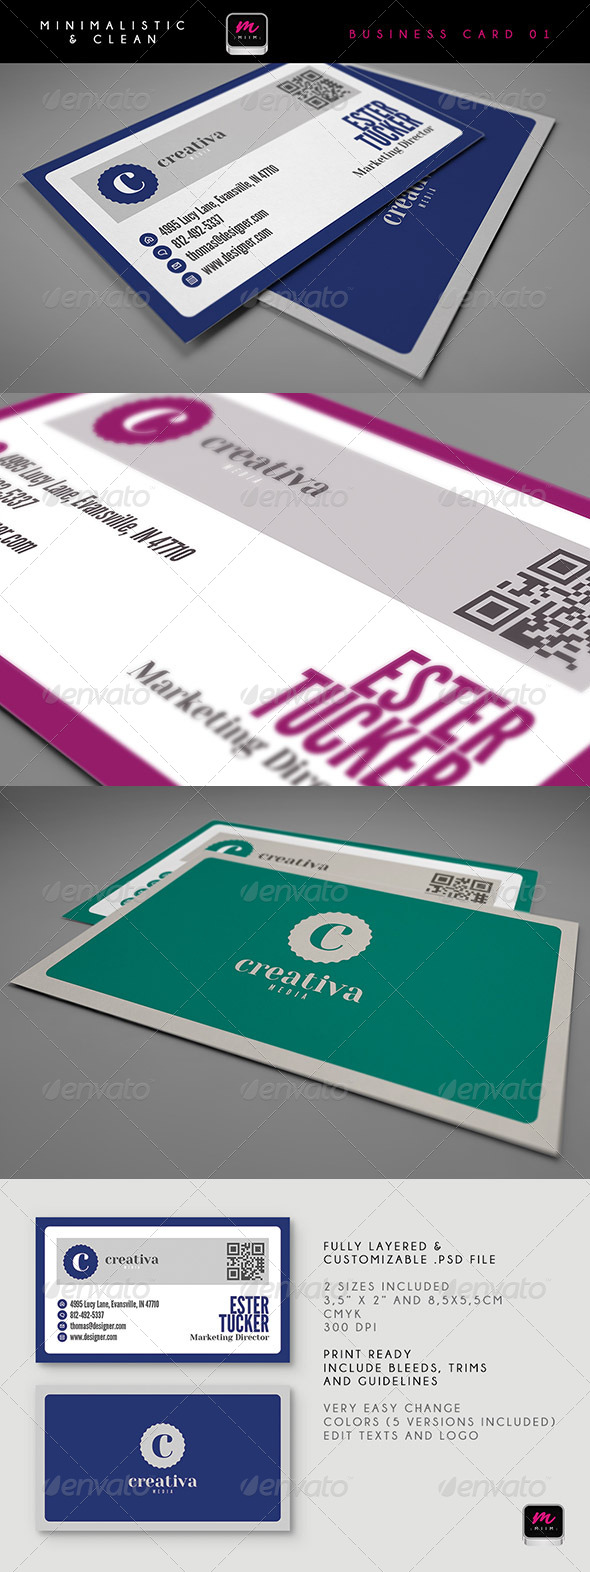 GraphicRiver Clean Business Card Template 02 5901512